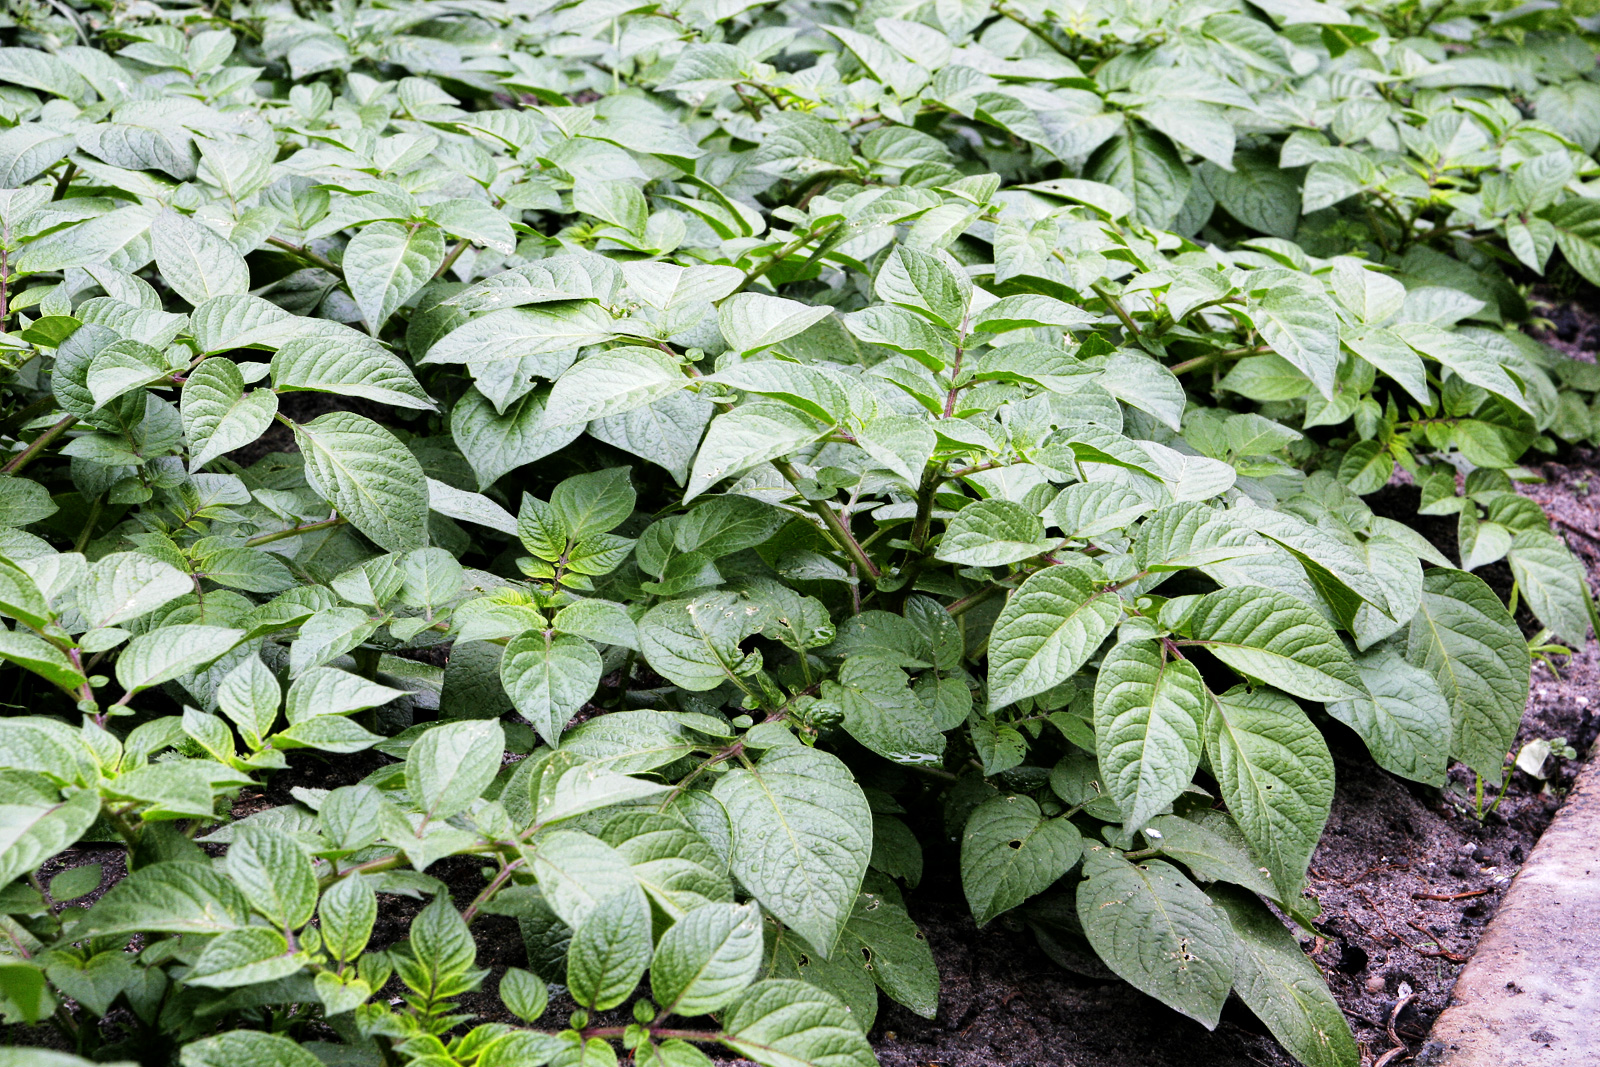 File:potato plants